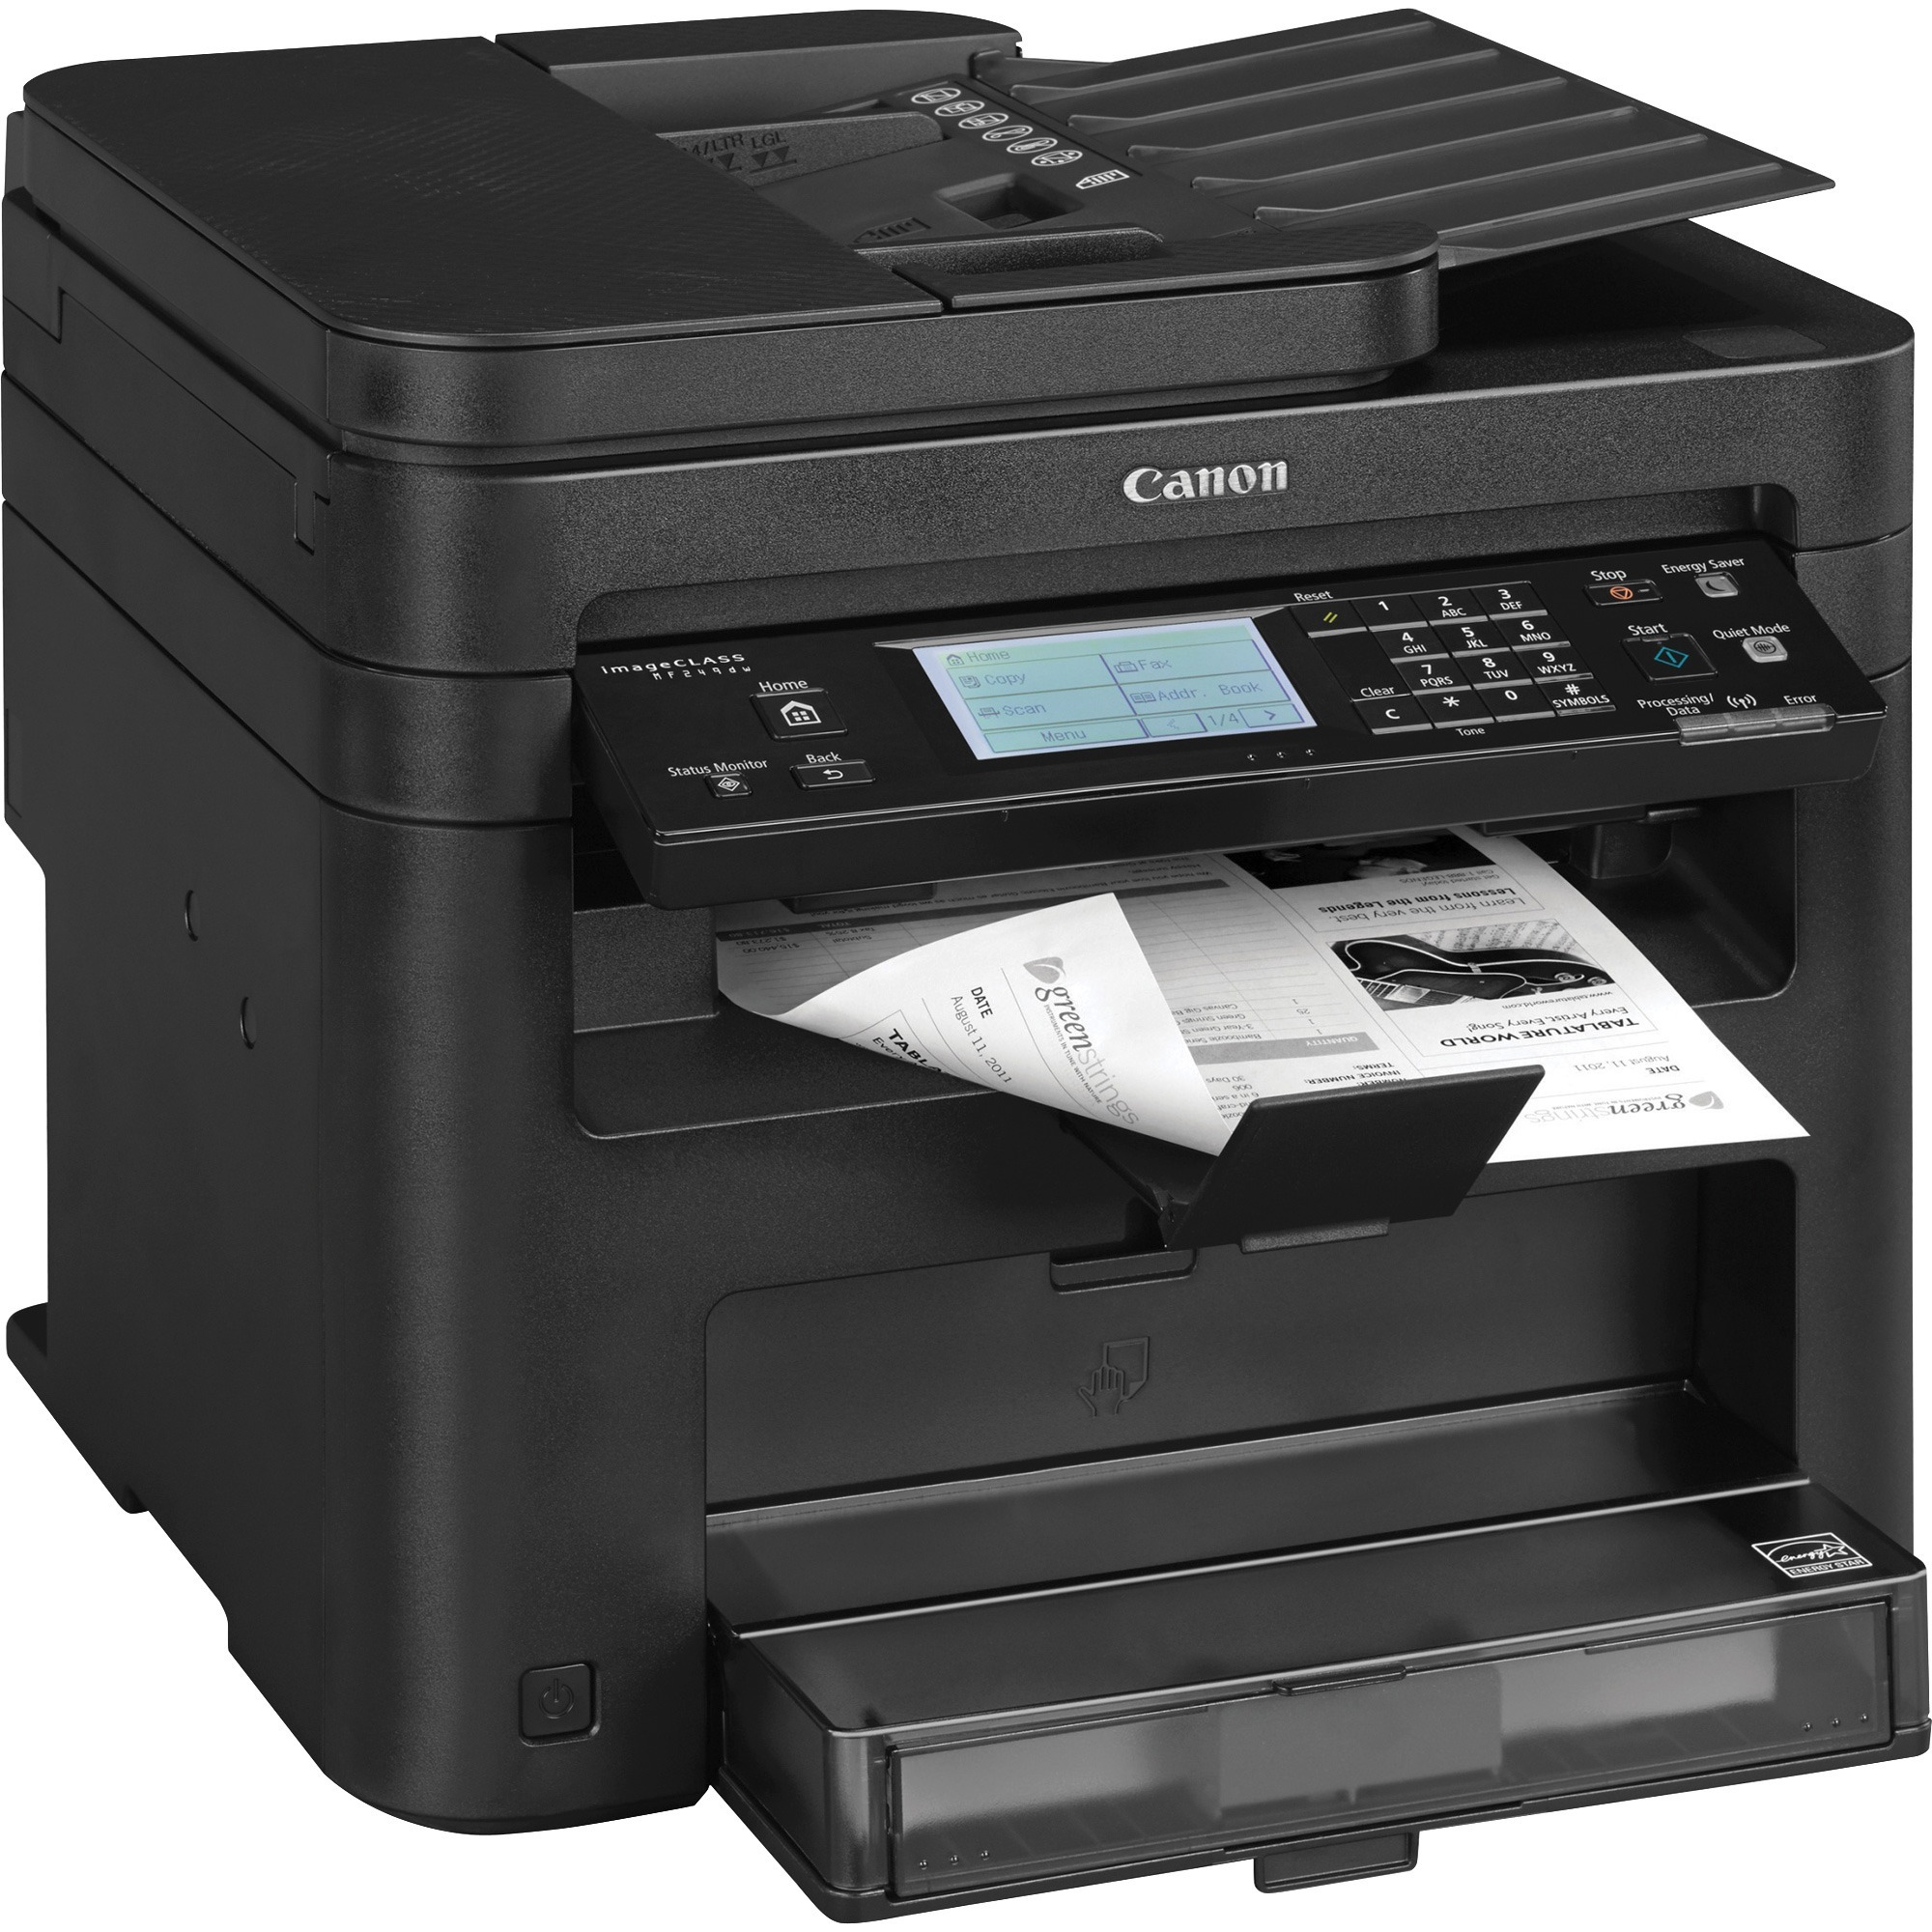 Canon, CNMICMF249DW, imageCLASS MF249dw All-in-1 Laser Printer, 1 Each